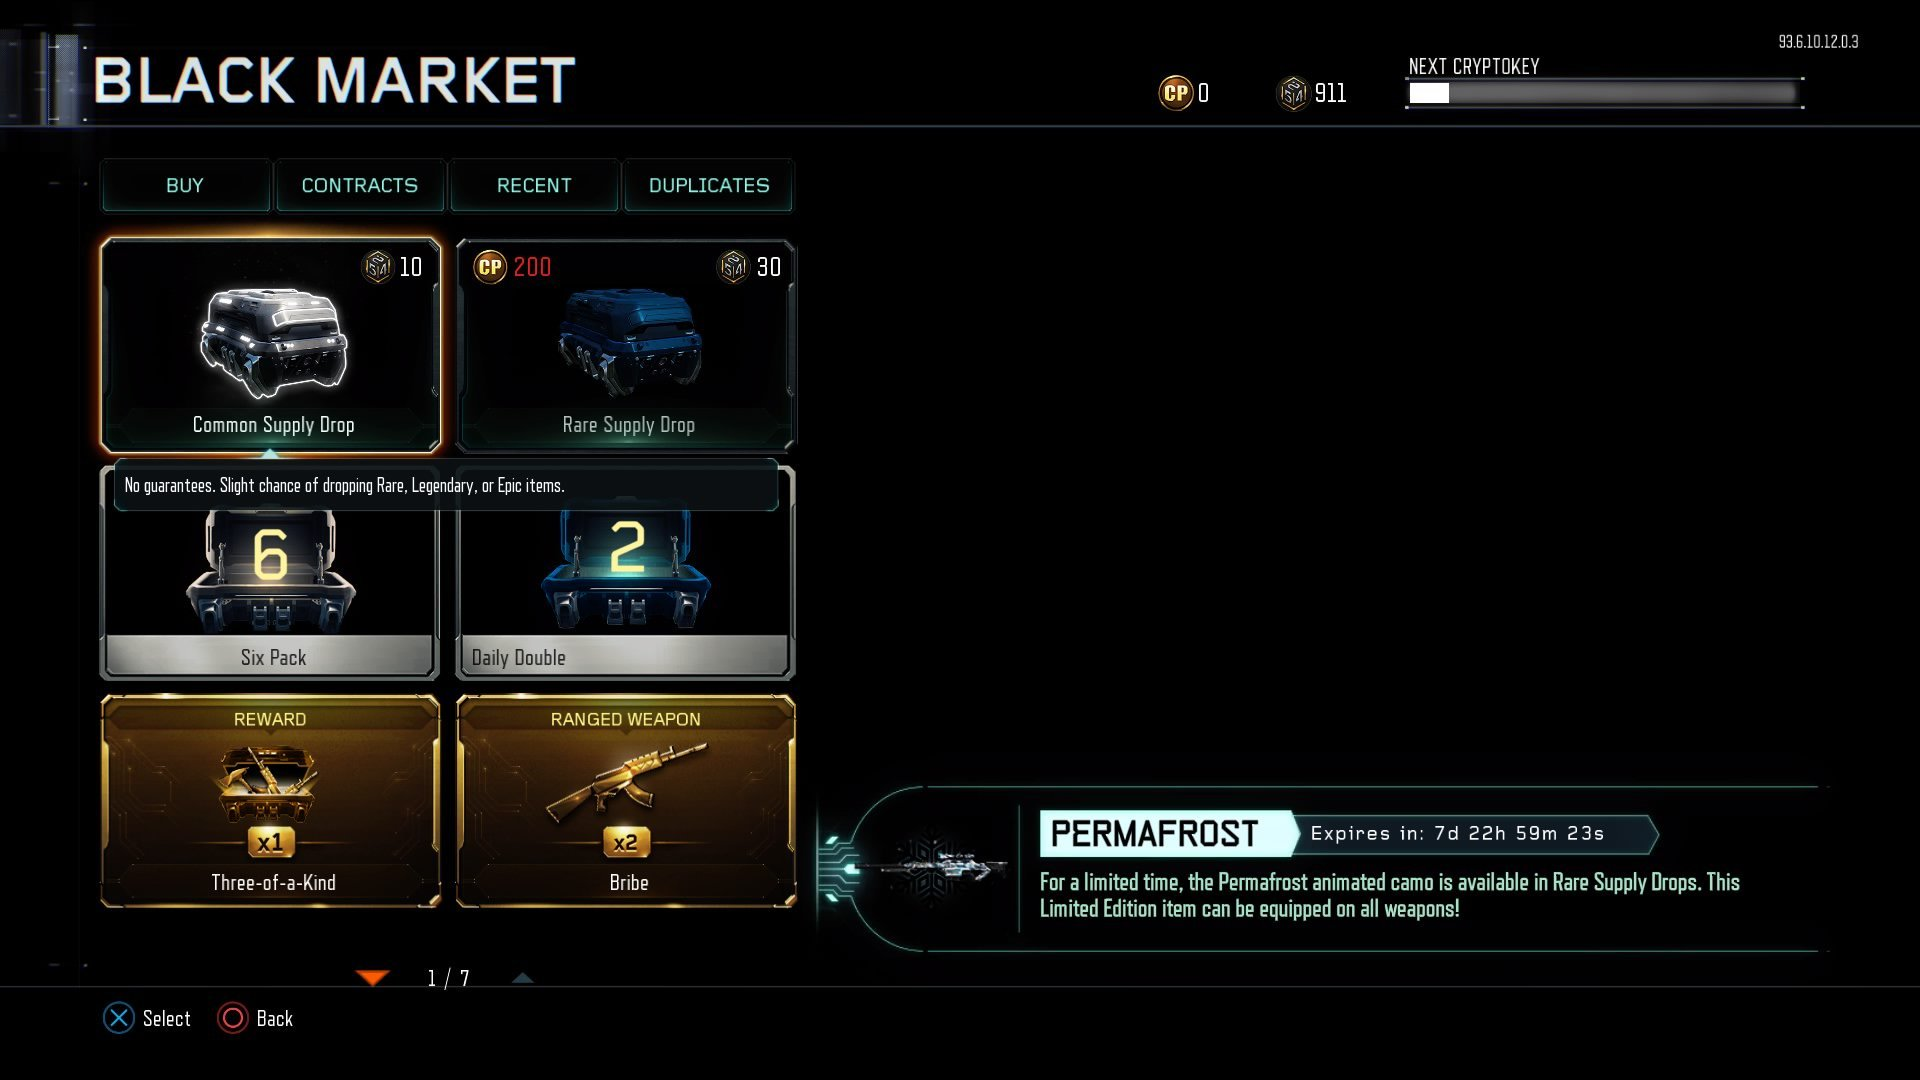 New weapons, Permafrost Camo, and Specialist Gear available in Black Ops 3's Black Market